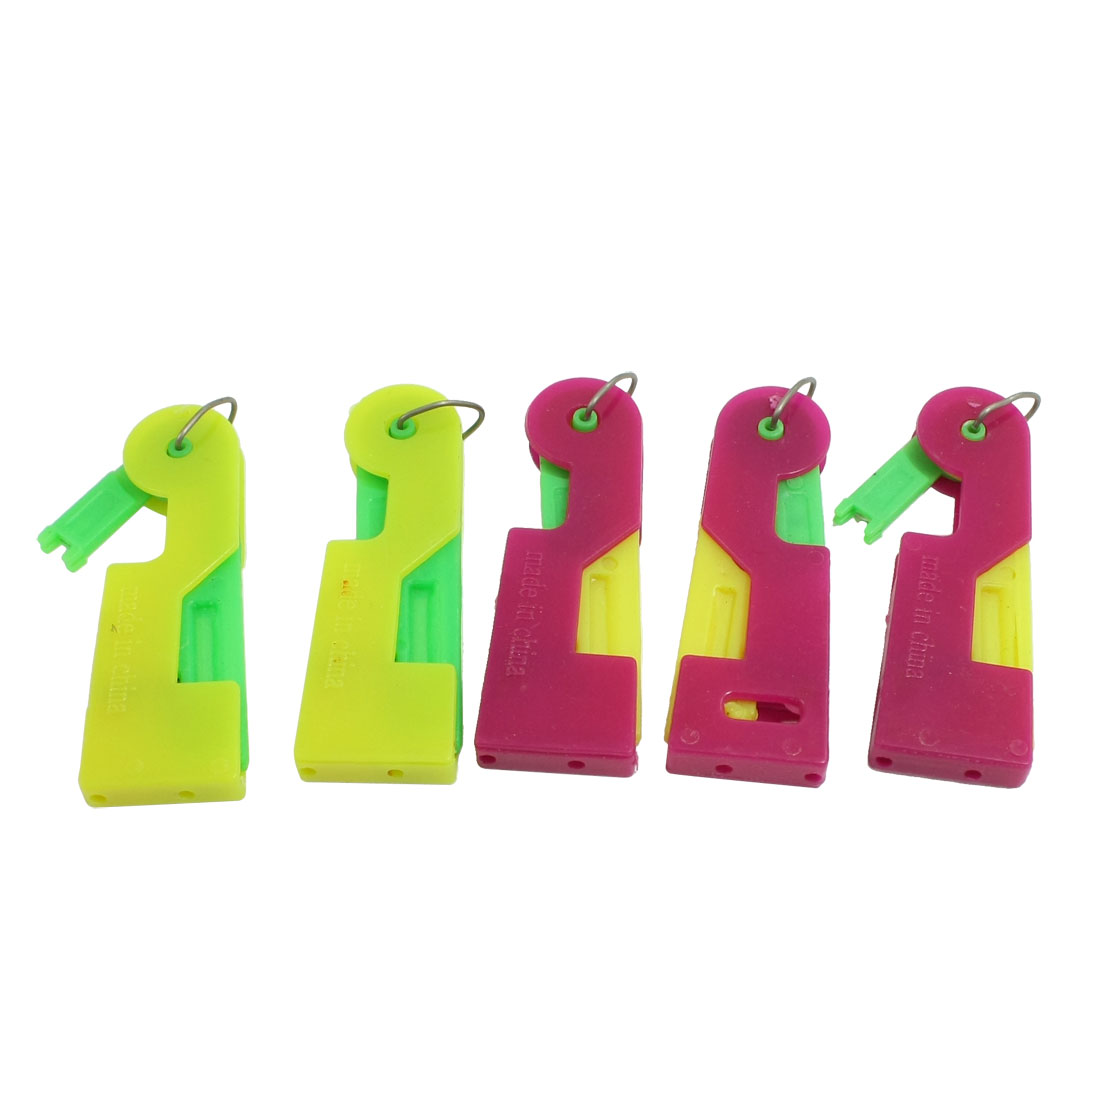 5 Pcs Fuchsia Green Yellow Plastic Housing Sewing Needle Threaders